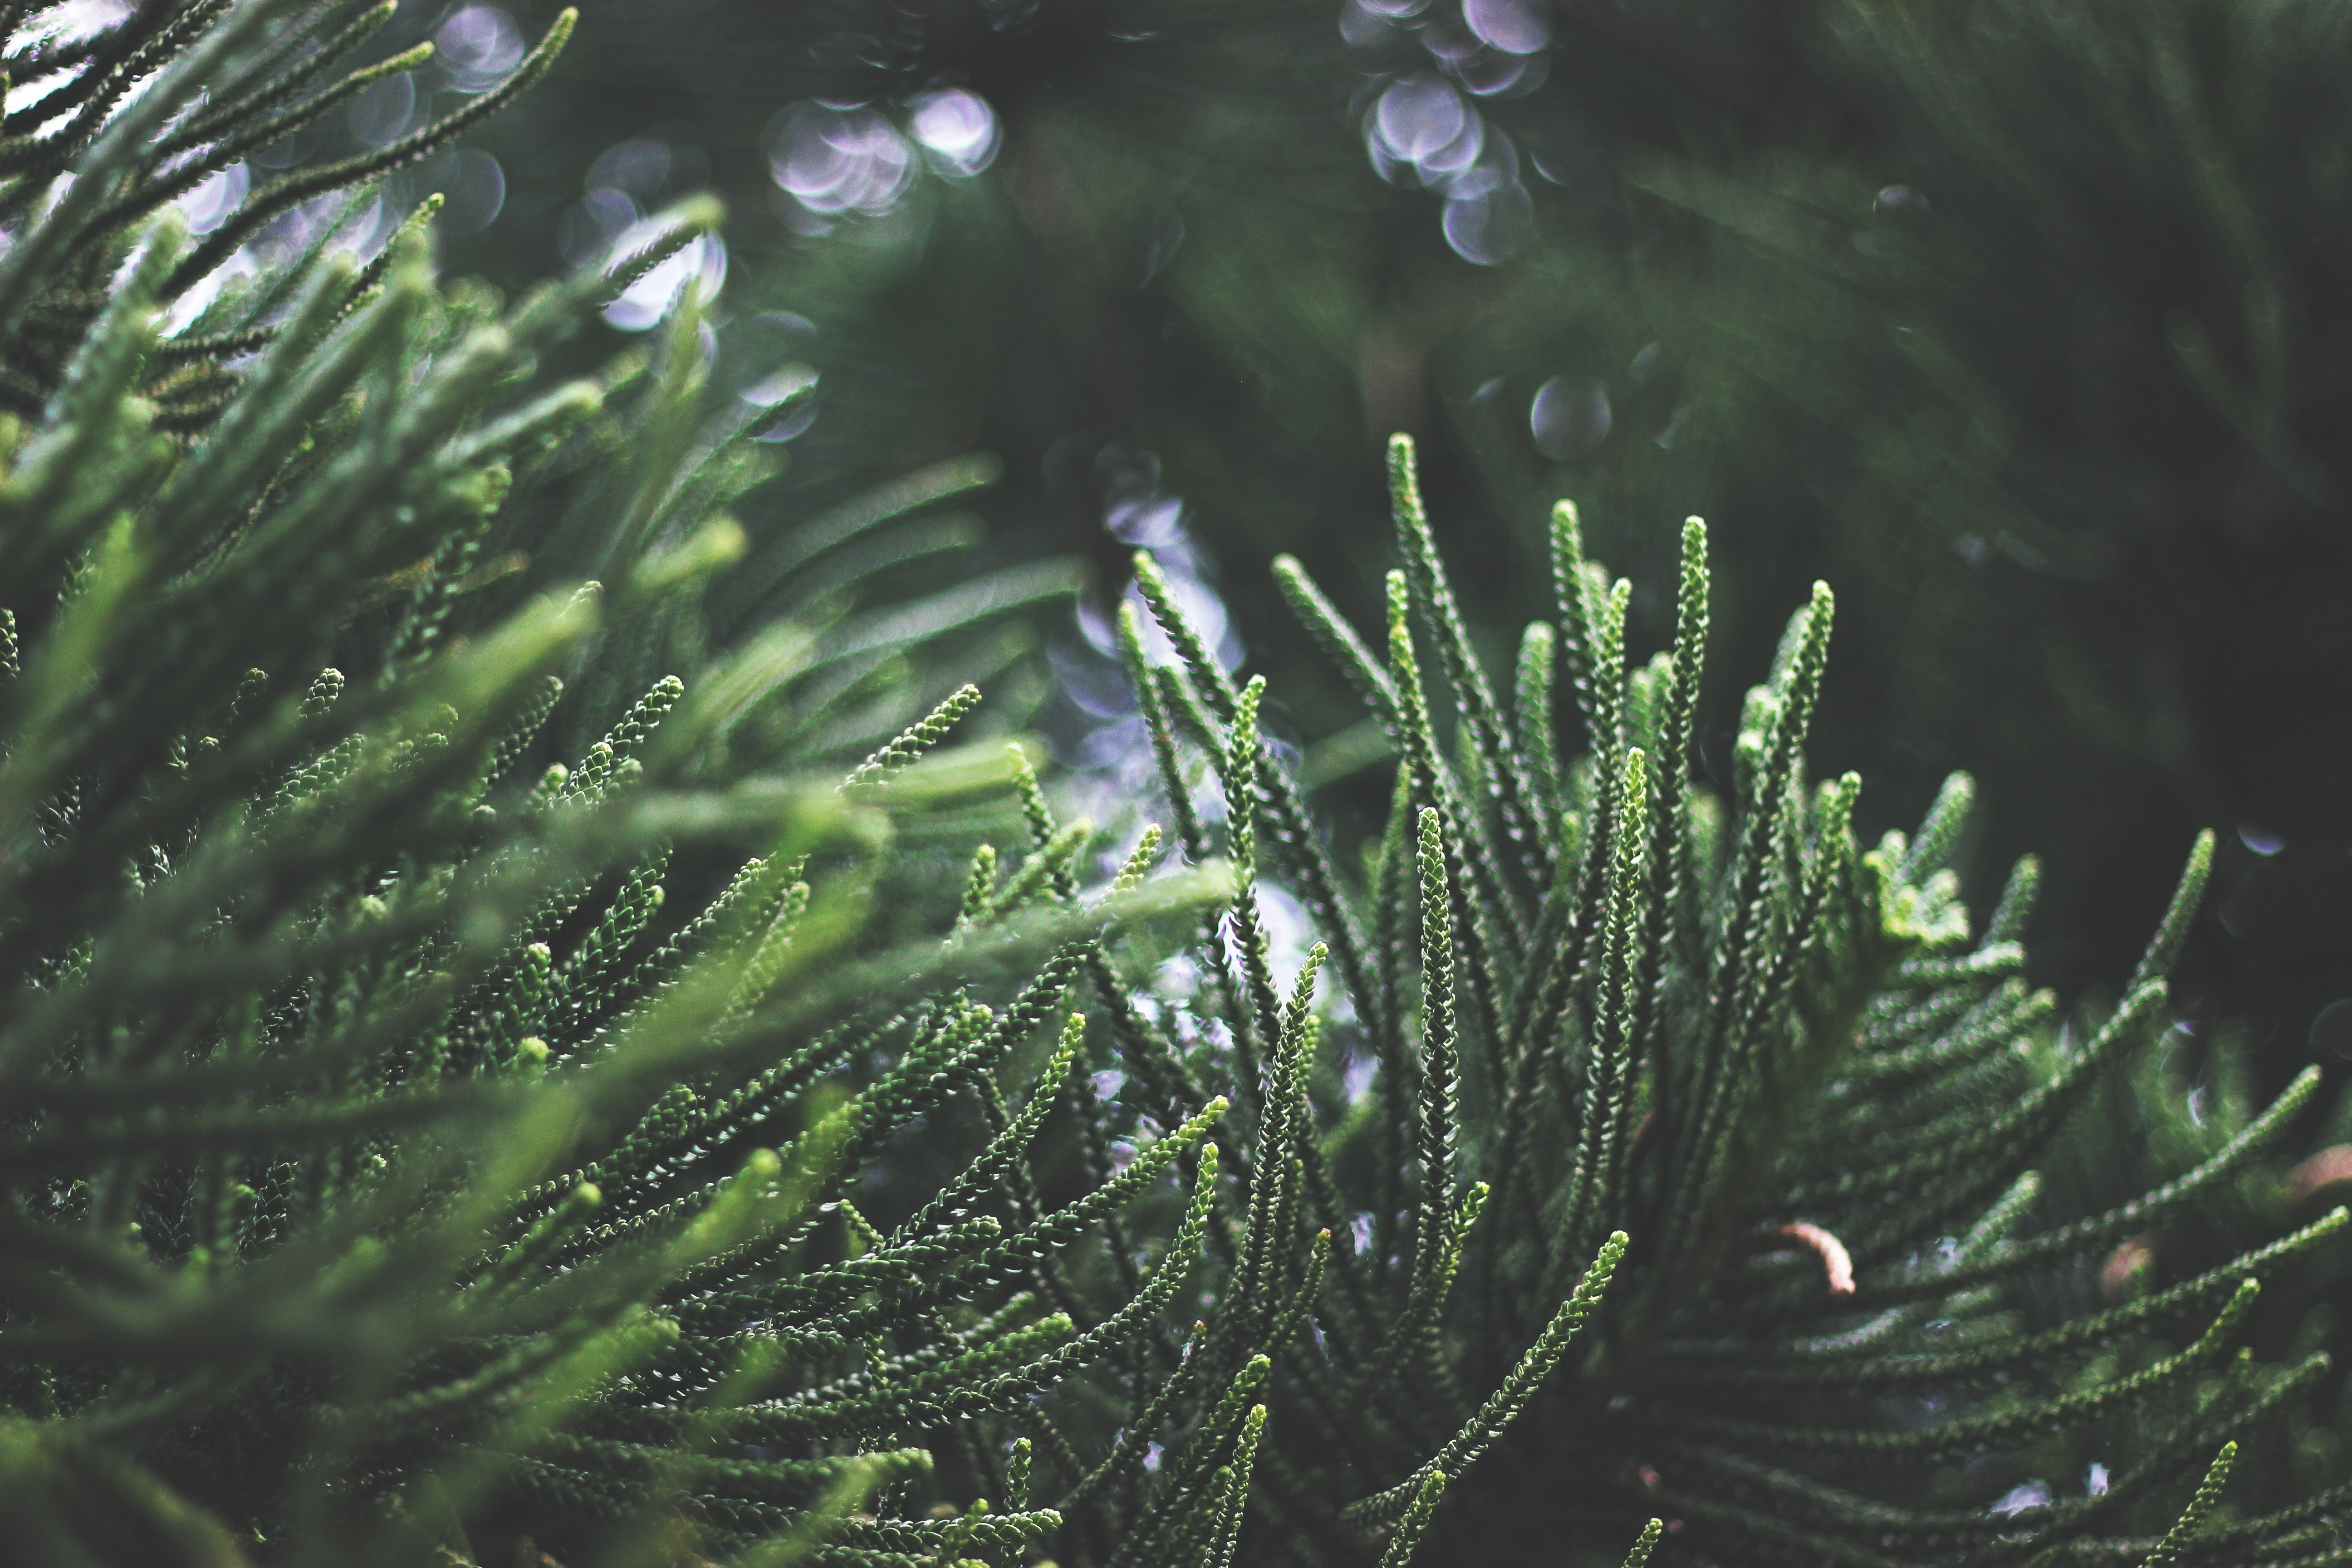 Close-up of Fresh Green Plant, Blur, Growth, Trees, Spruce, HQ Photo